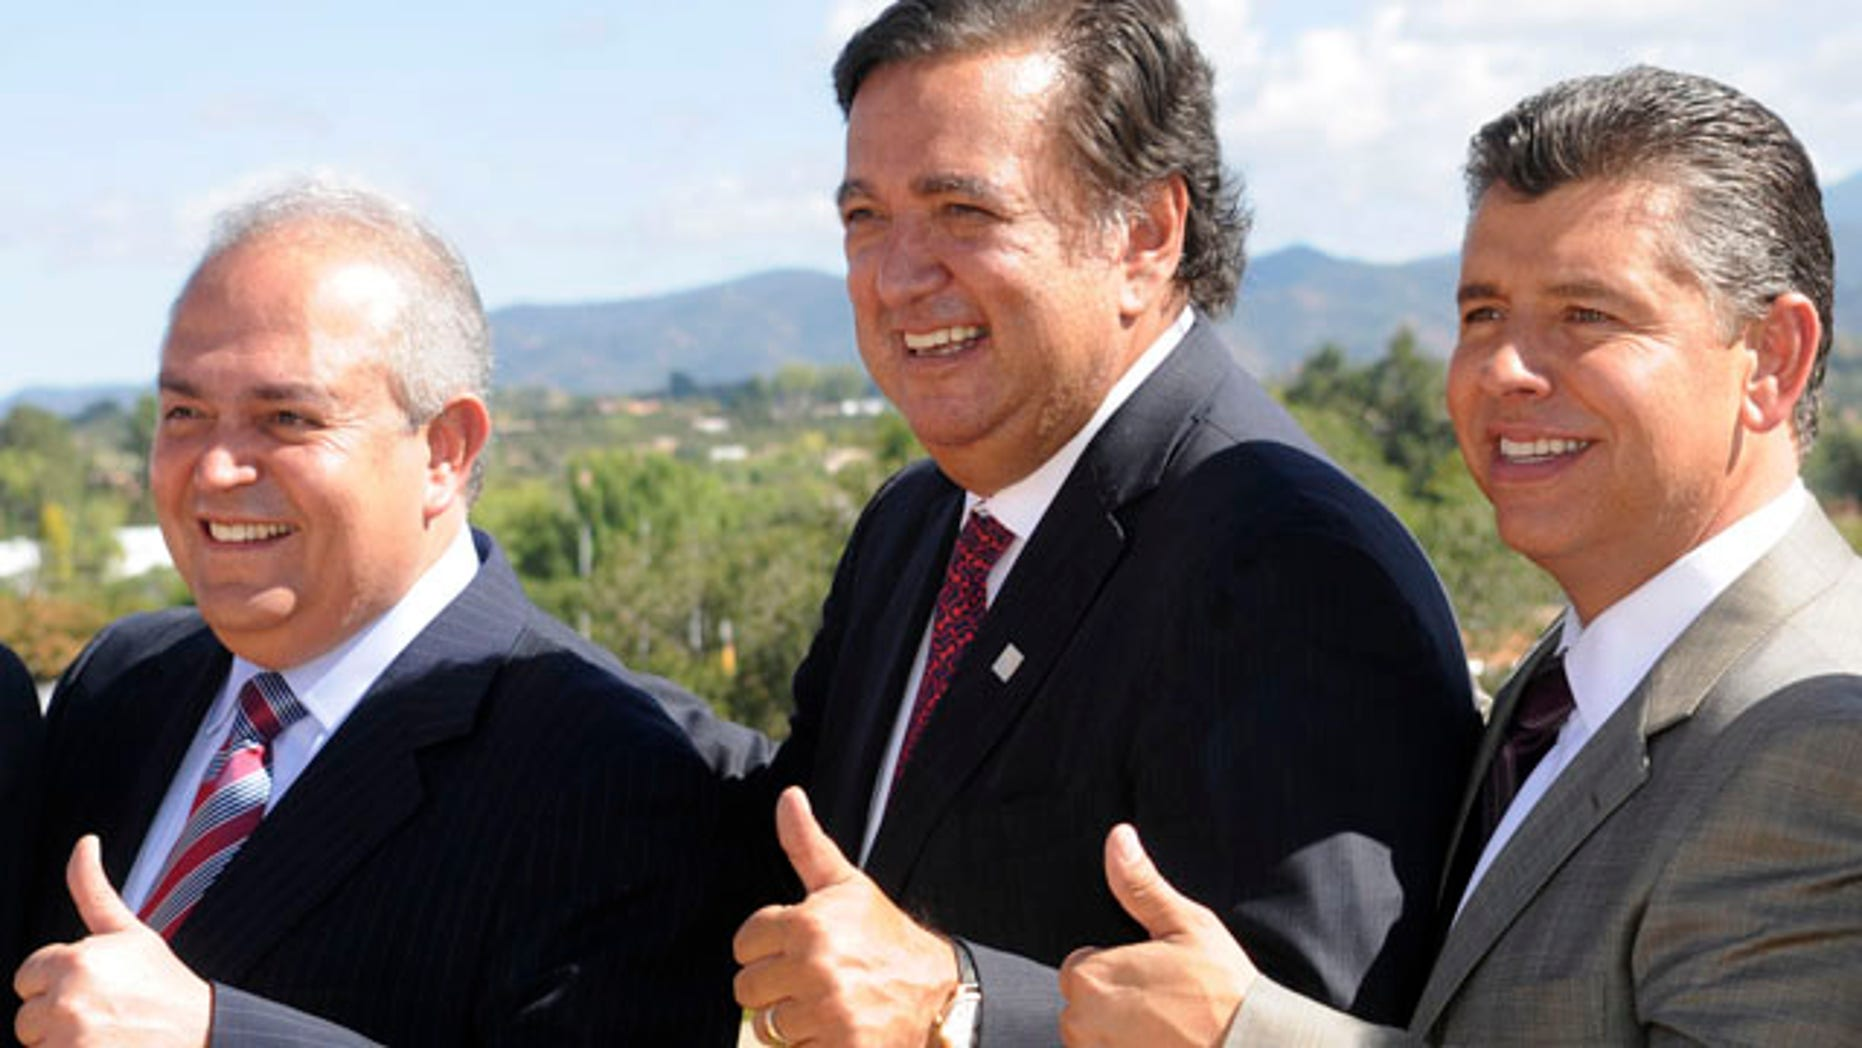 Baja California Governor Jose Guadalupe Osuna Millan, left, New Mexico Governor Bill Richardson, center, and Lt. Governor of California Abel Maldonado pose for photos at the 2010 Border Governors Conference in Santa Fe, New Mexico on Monday Sept. 20, 2010. (AP Photo/Dean Hanson, Pool)